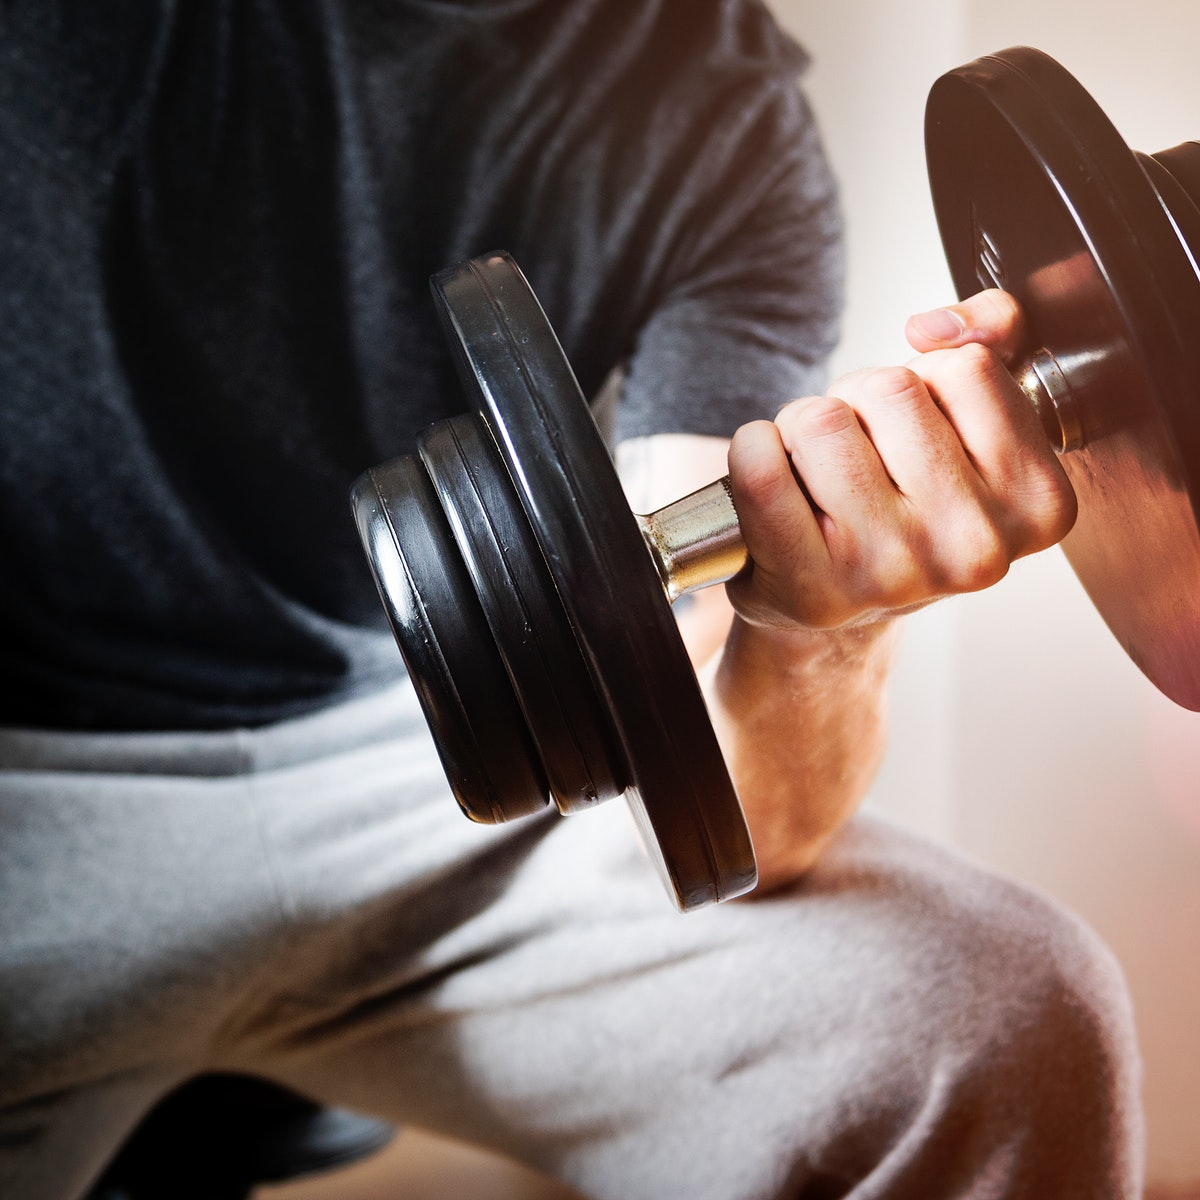 Closeup of hand holding barbell weight training